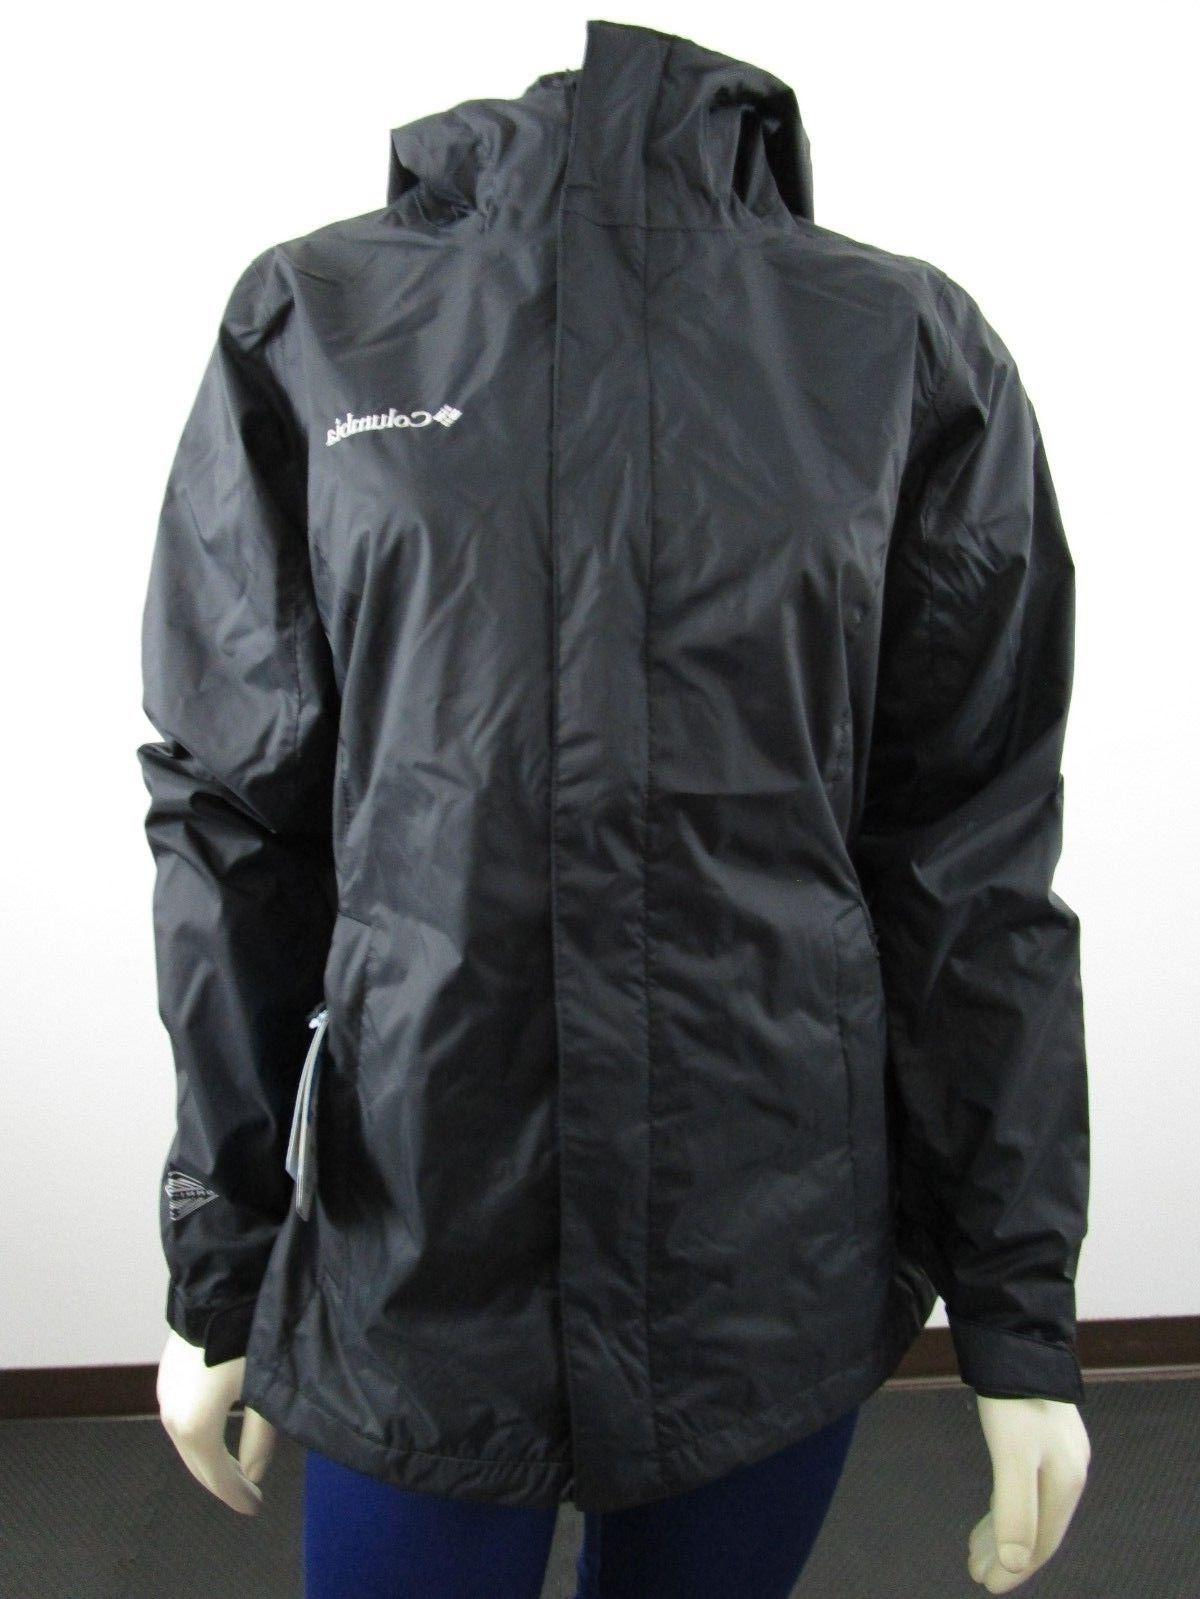 nwt womens timber pointe packable waterproof rain